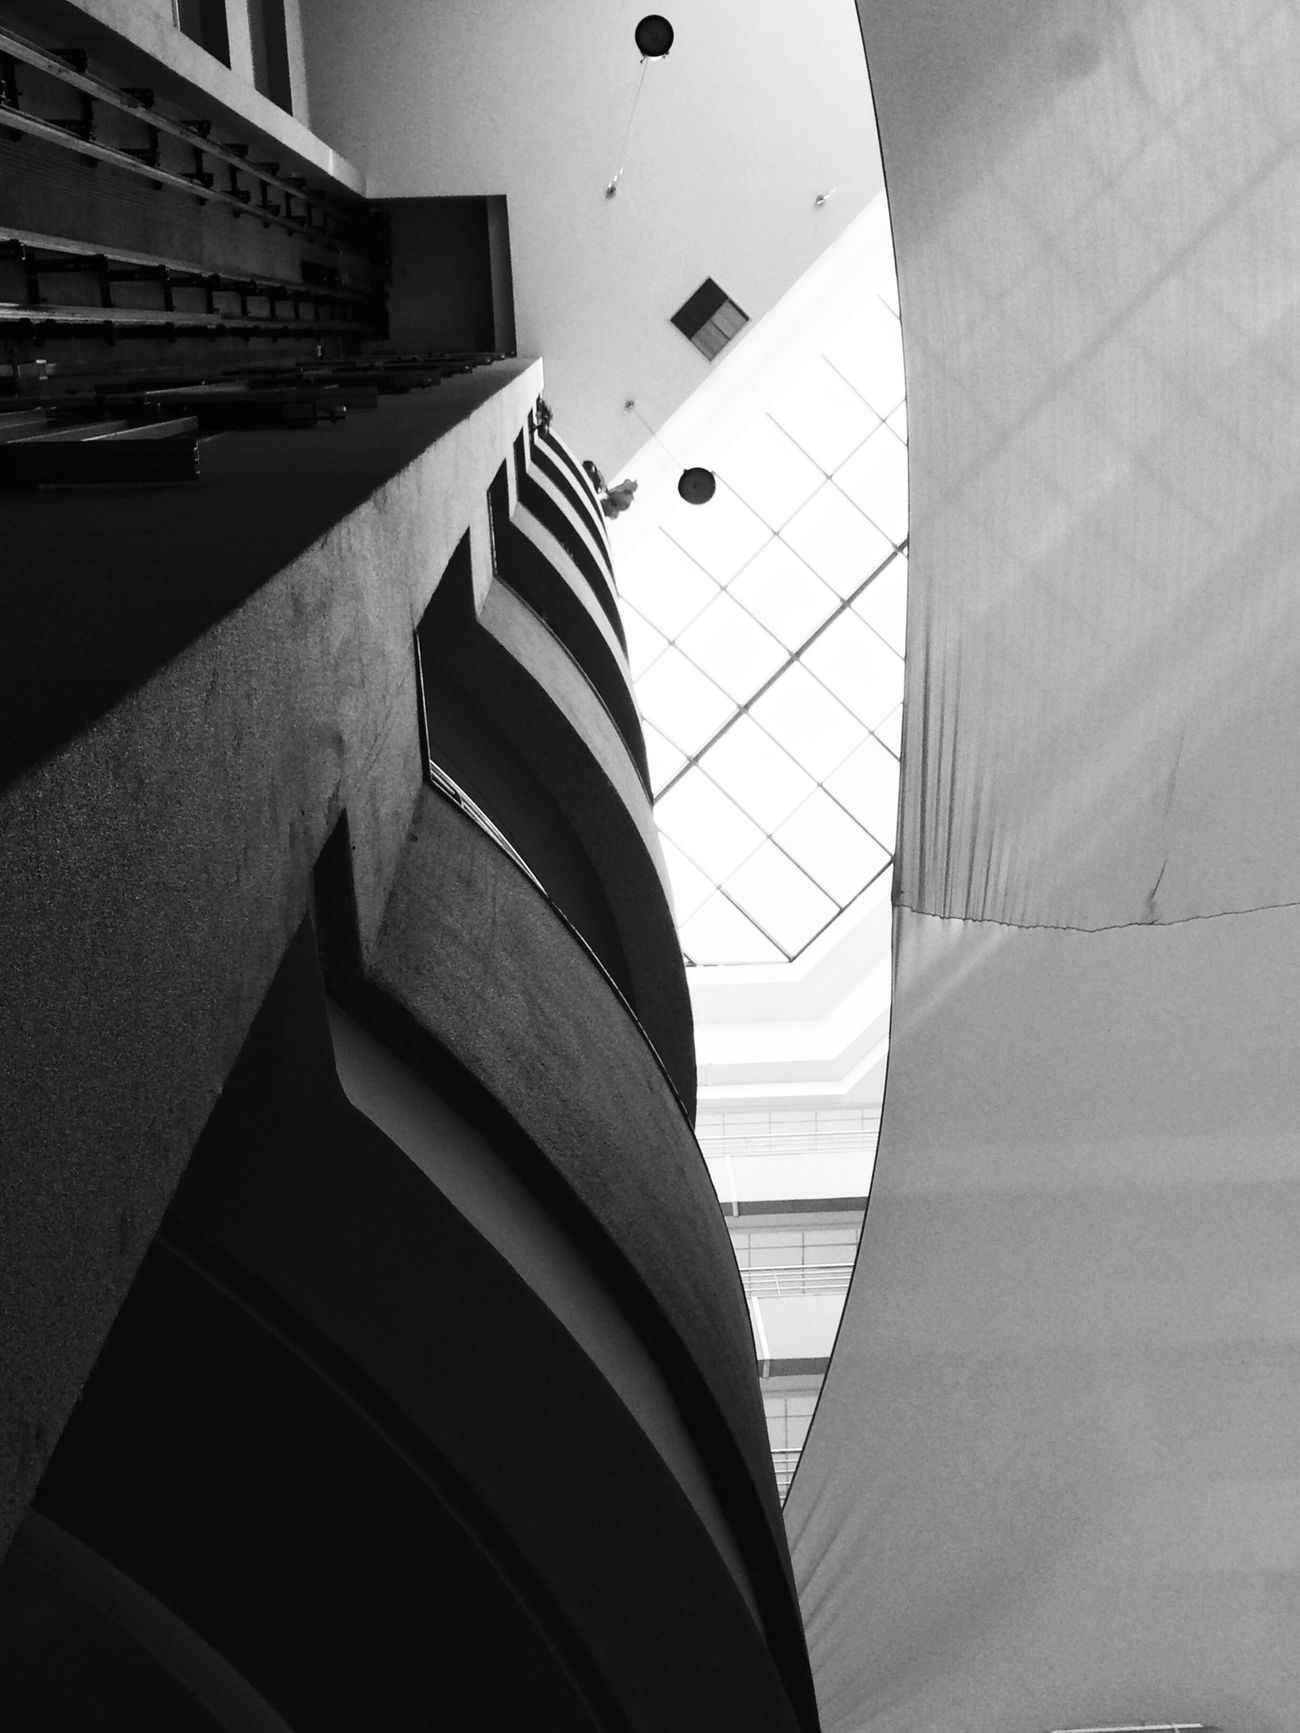 Monochrome Blackandwhite Perspectives Architecture